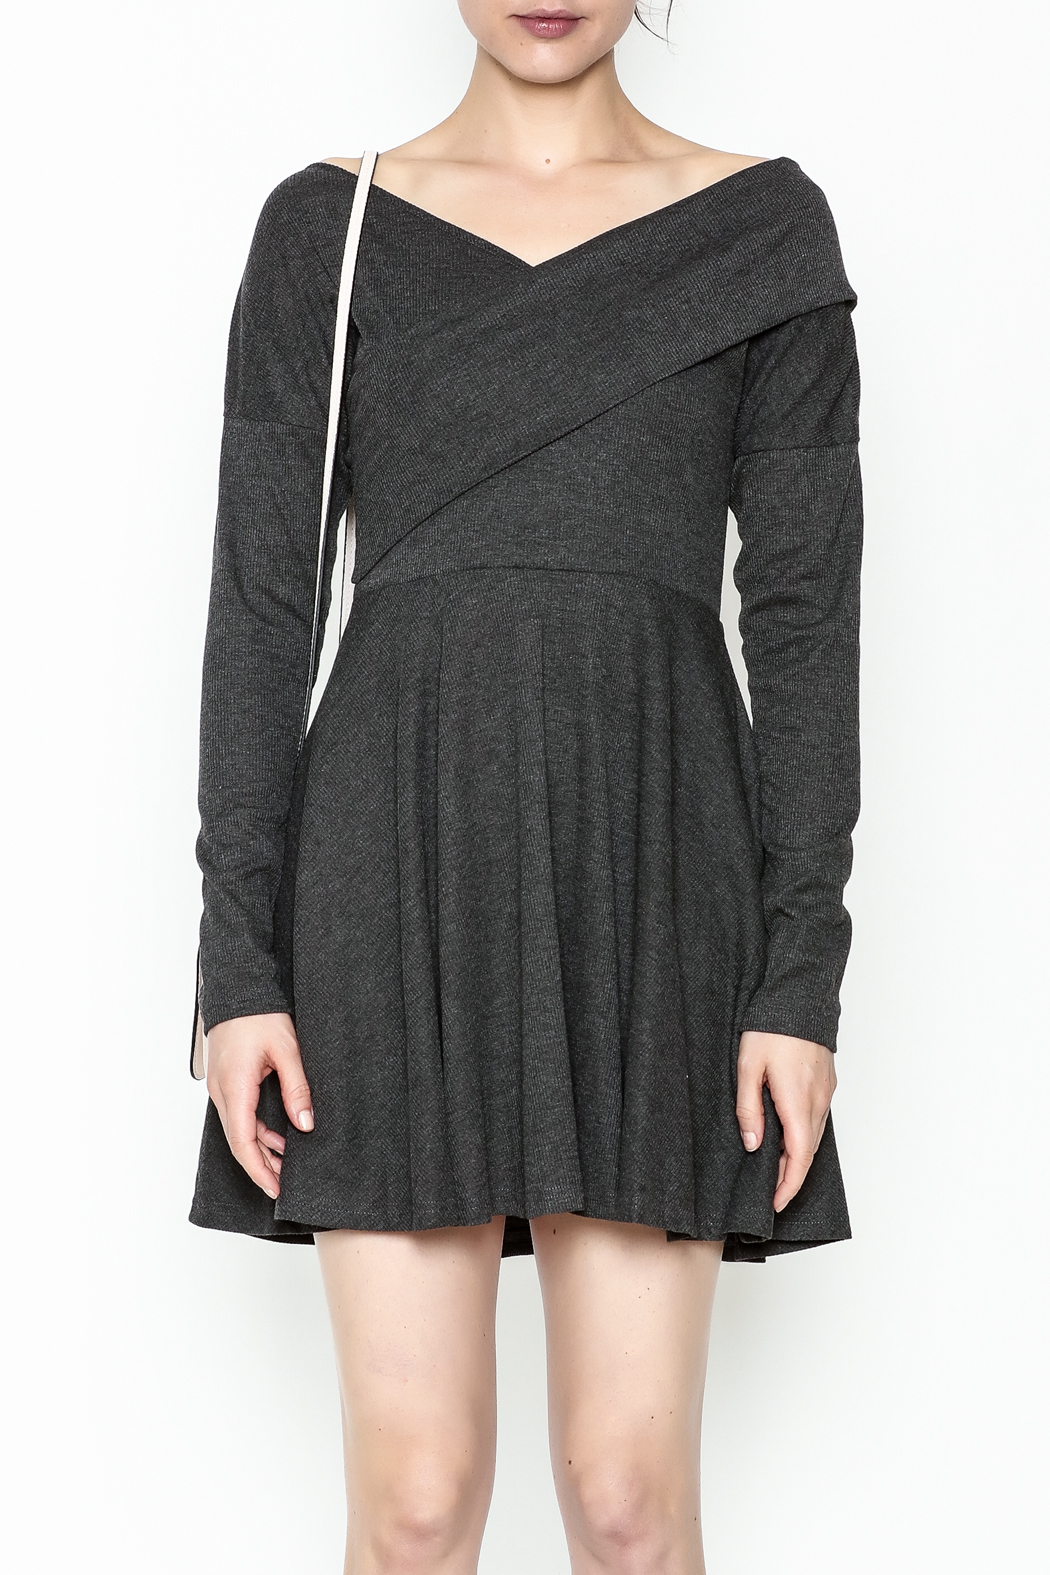 Fashion Pickle Grey Sweater Dress - Front Full Image